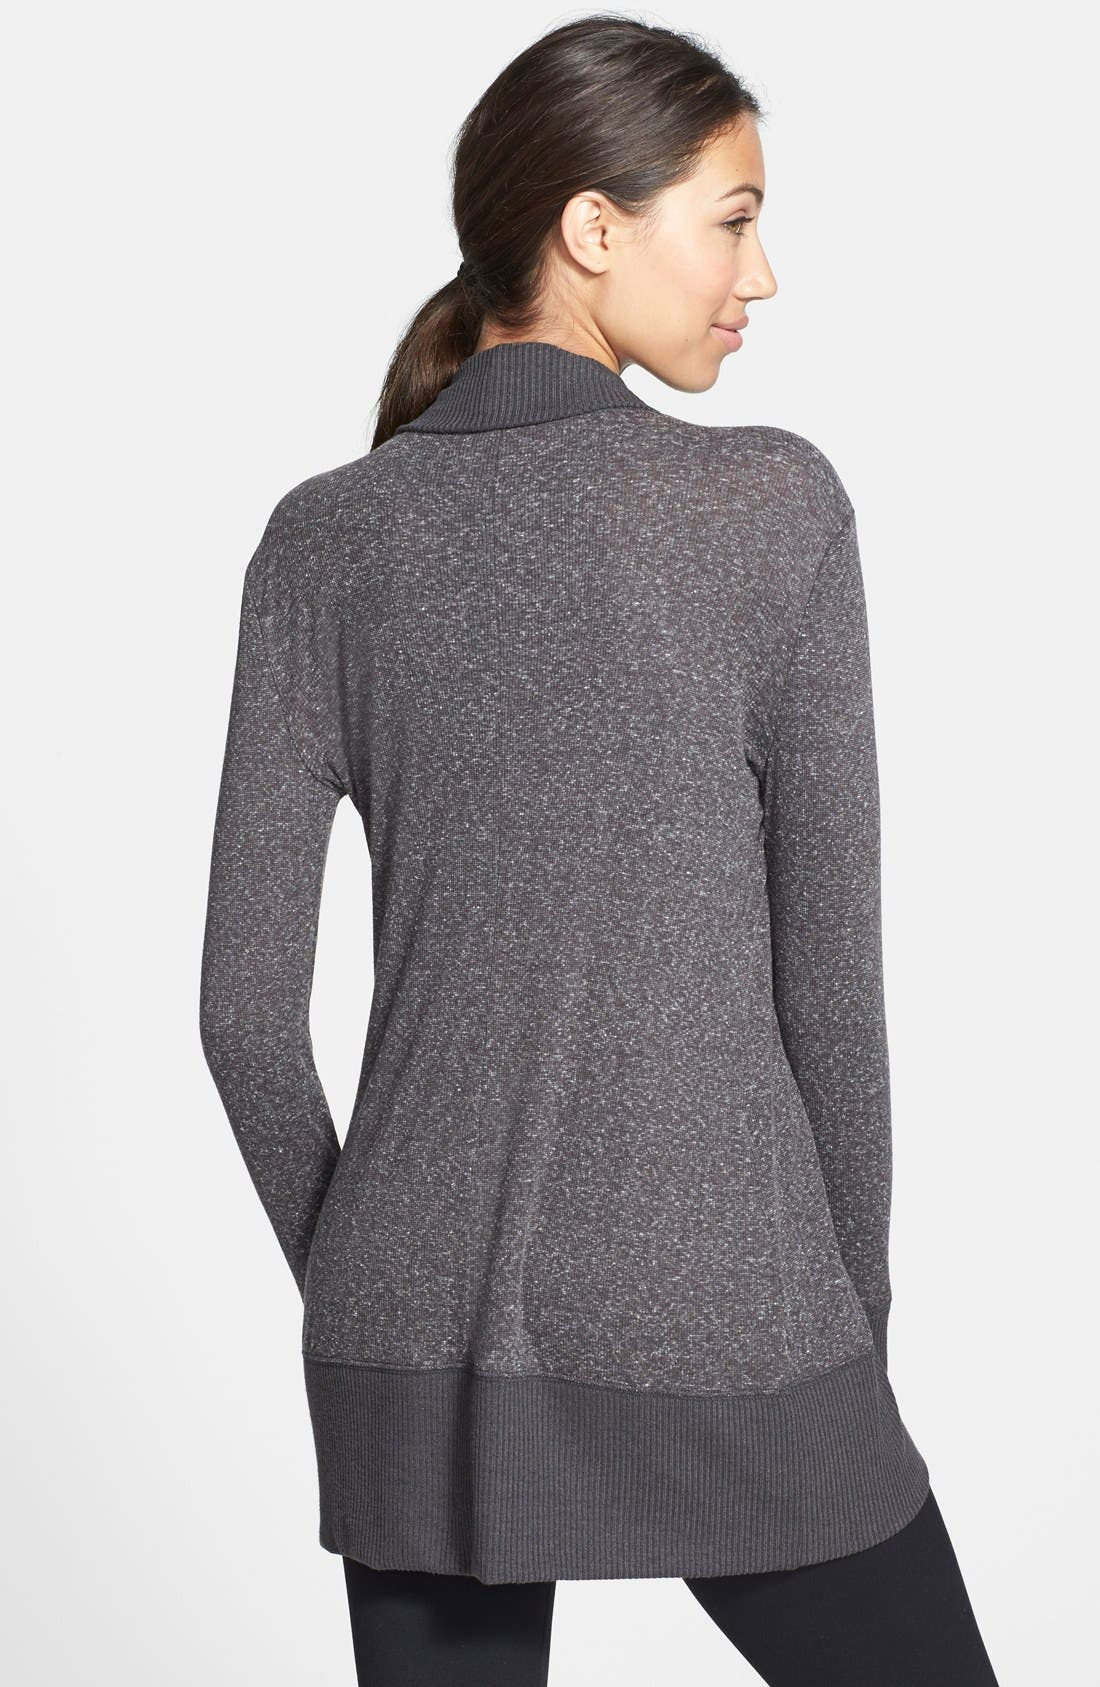 Open Front Cardigan,                             Alternate thumbnail 2, color,                             Charcoal Grey